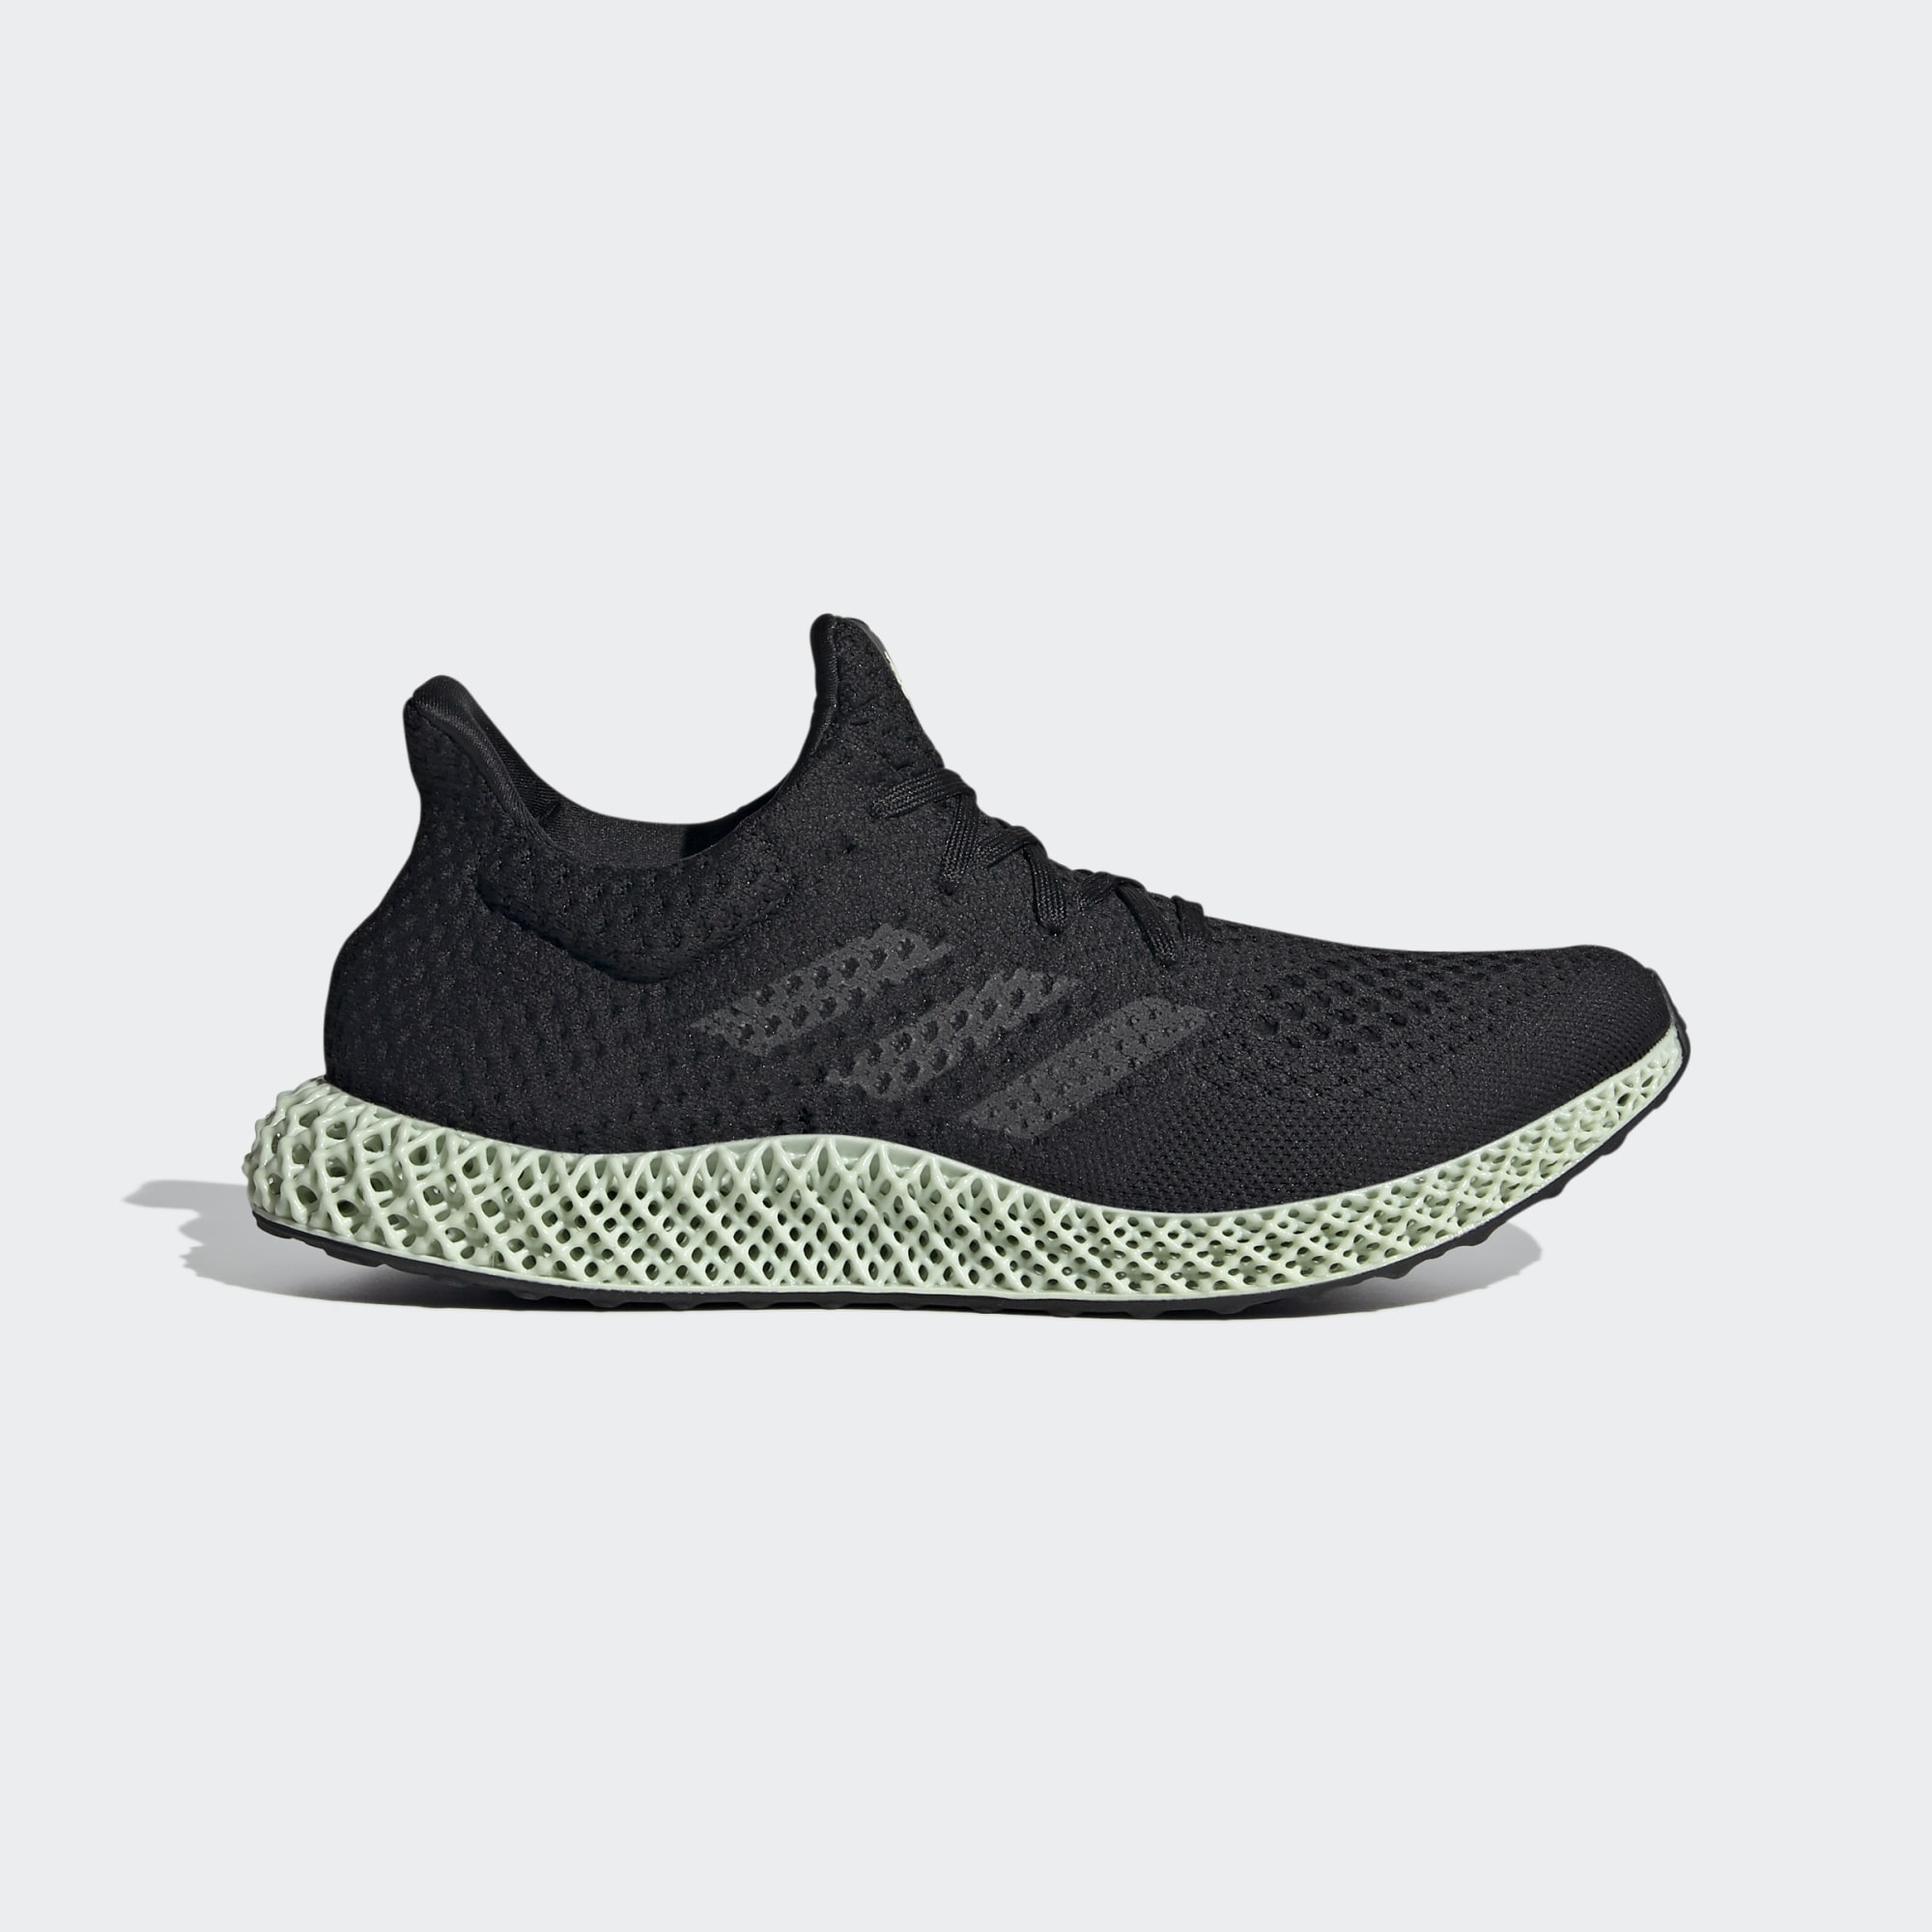 adidas Futurecraft 4D 'Core Black'}